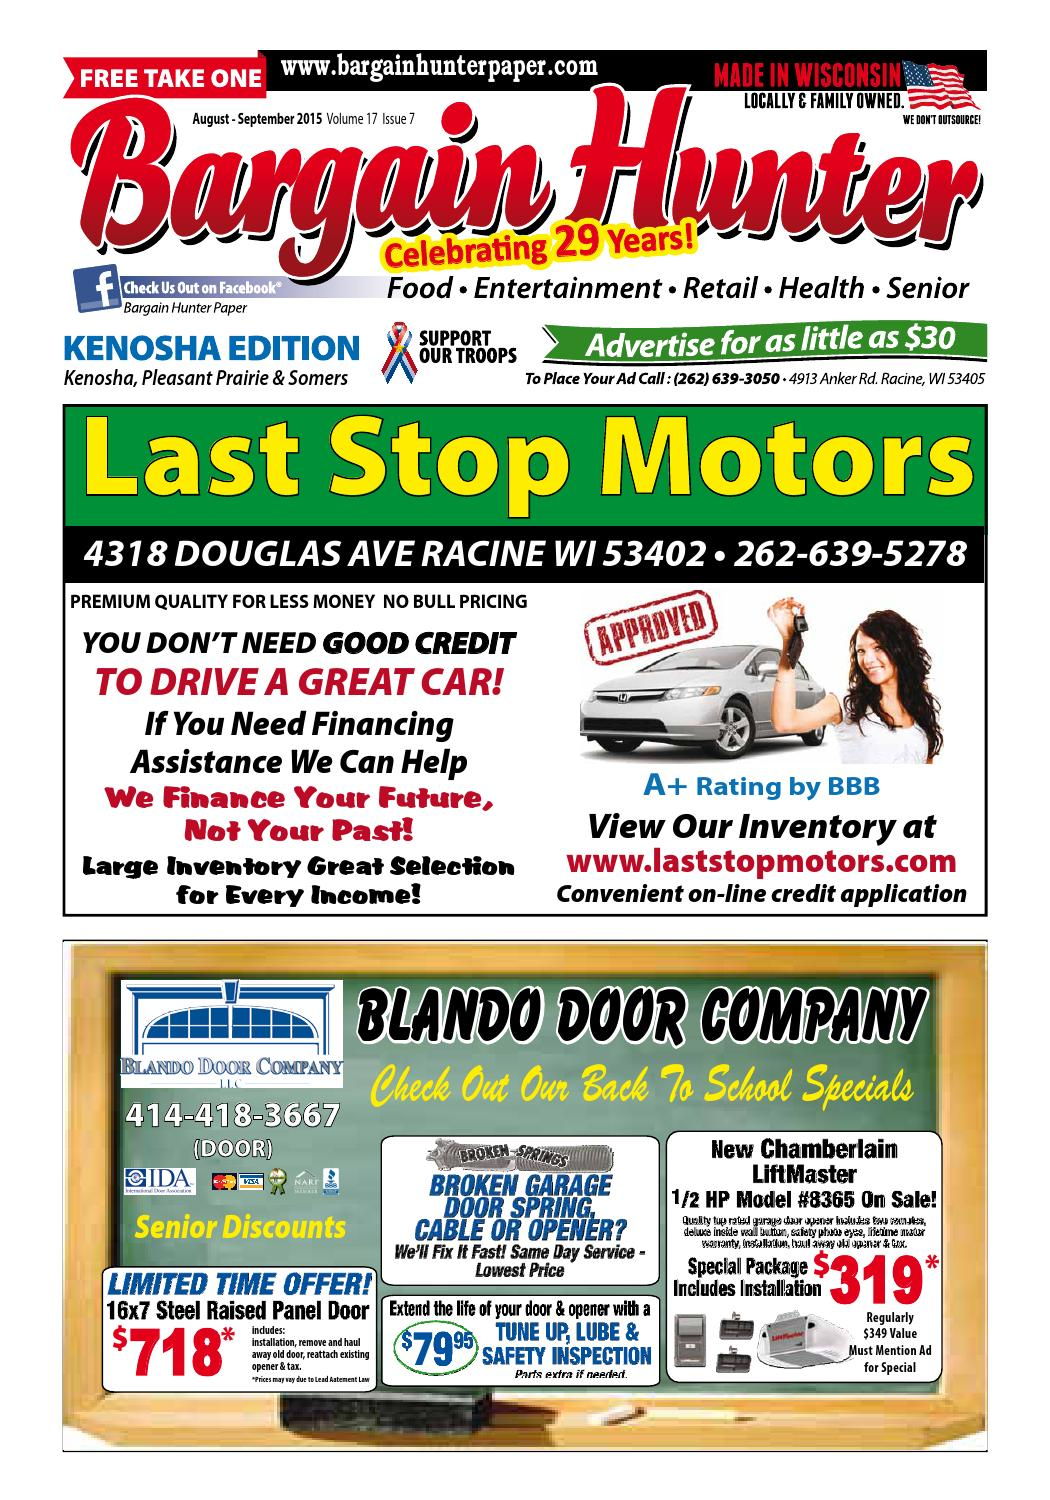 Bargain hunter kenosha august 2015 by jeff scott issuu for Drive away motors inventory